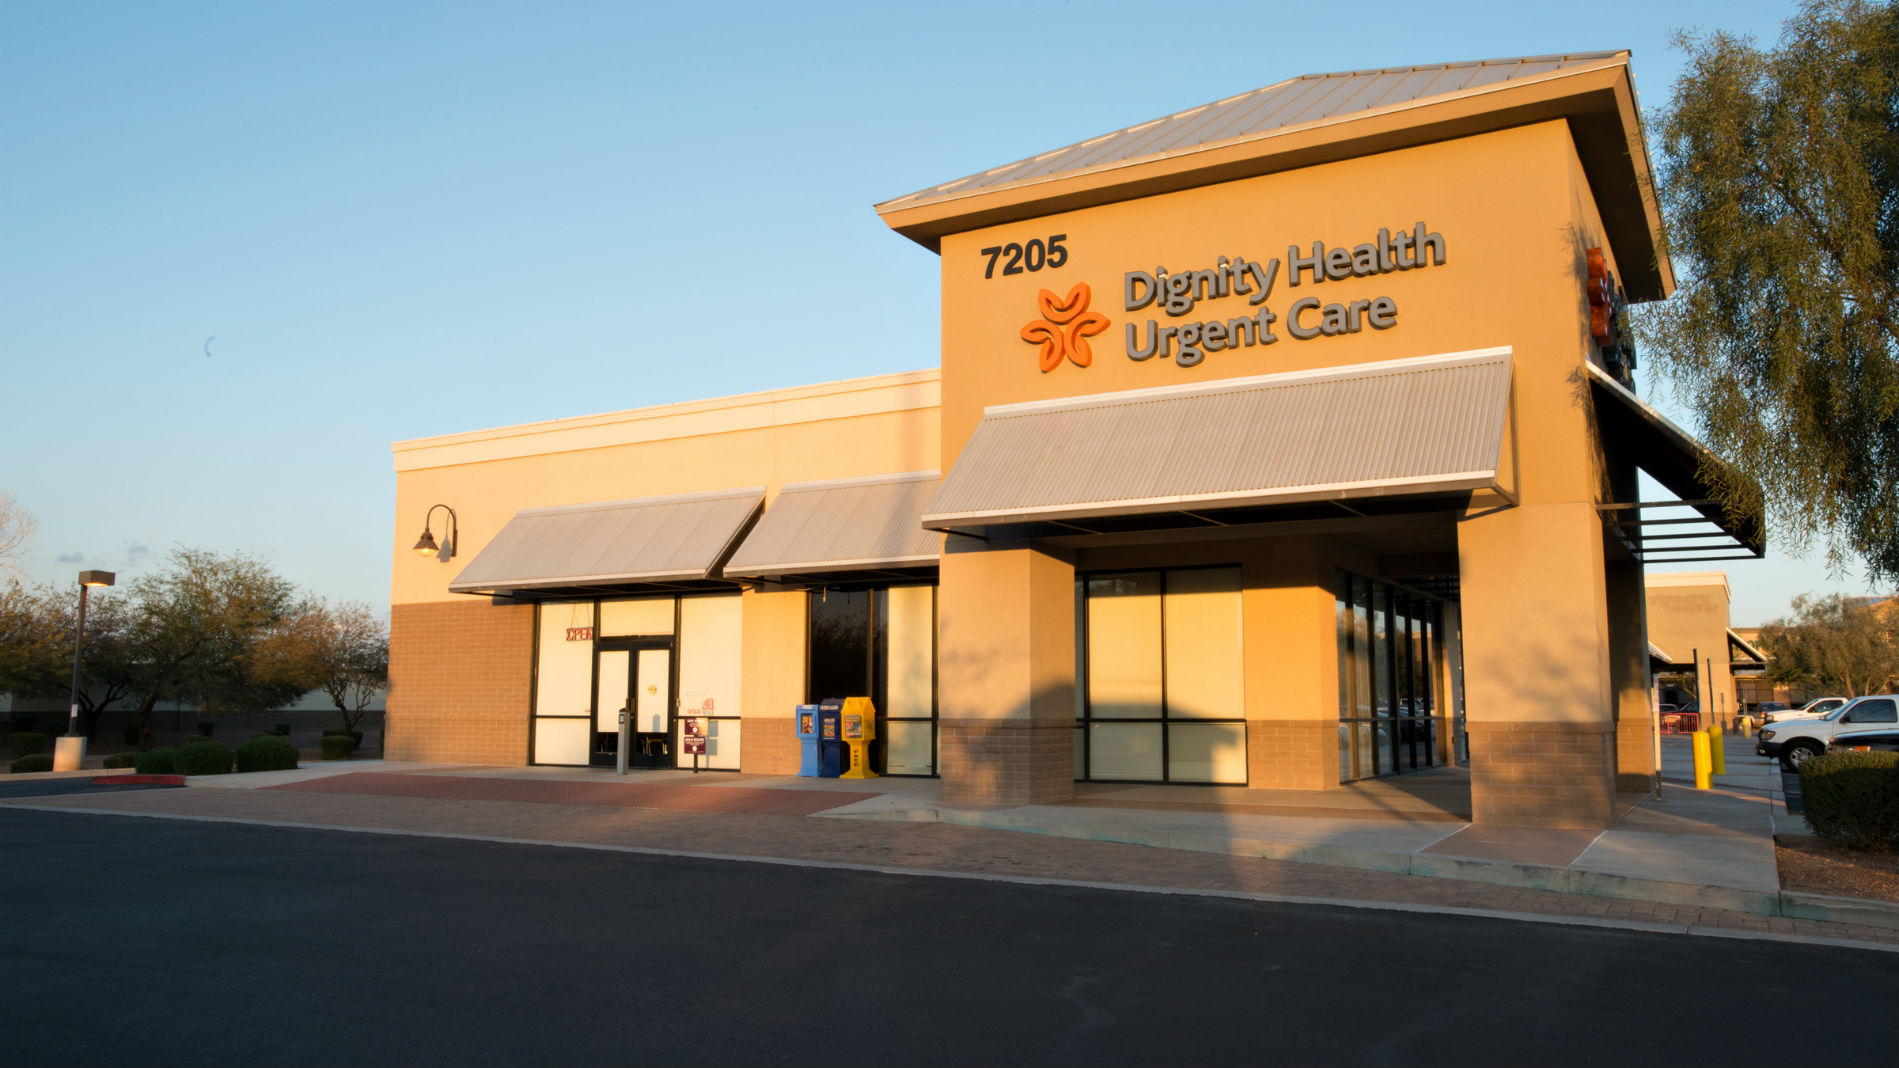 Dignity Health Urgent Care in Queen Creek